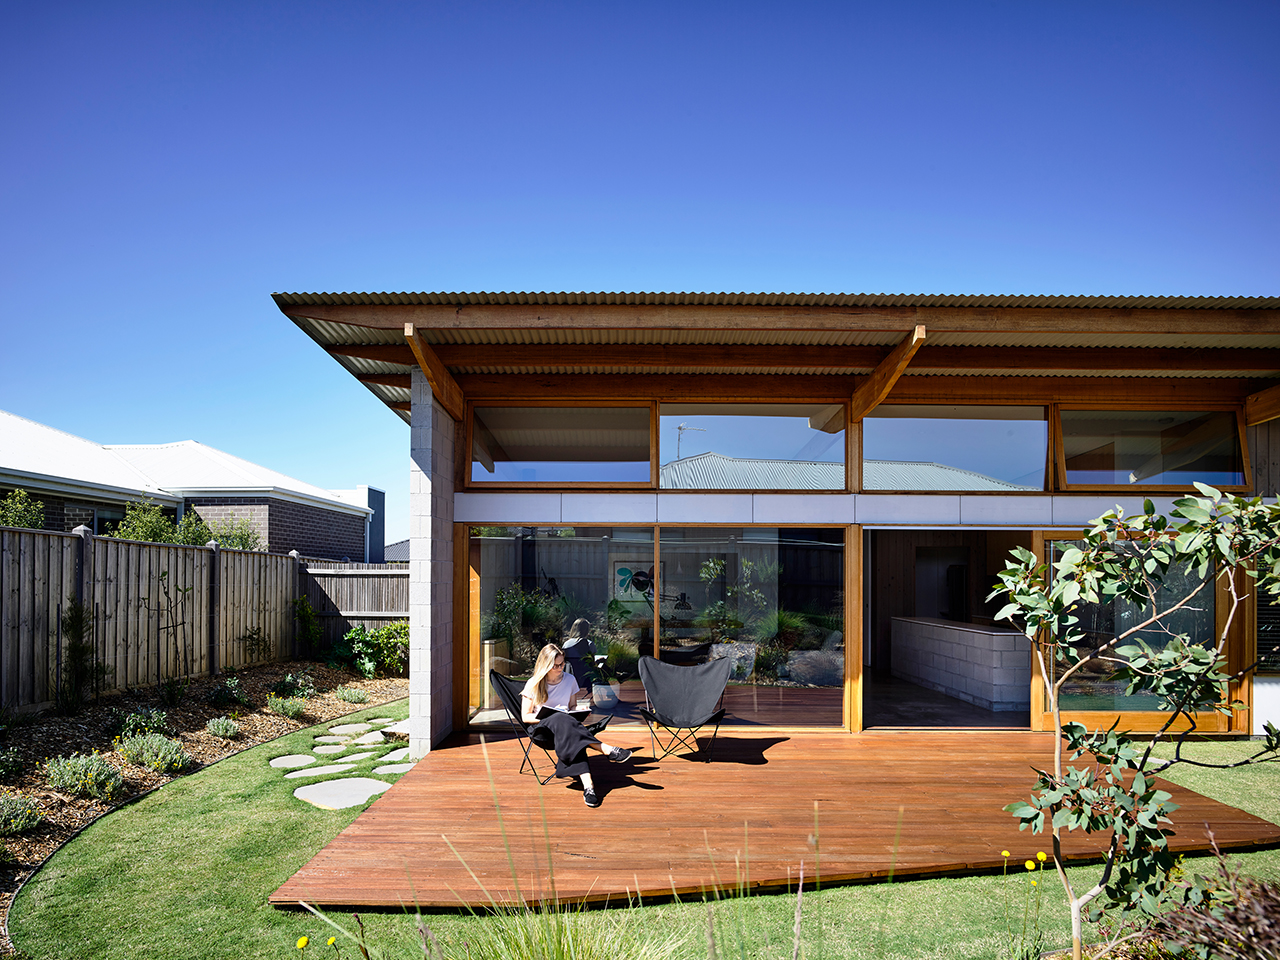 Ballarat House's Modern Details Stand Out From Its Suburban Neighborhood